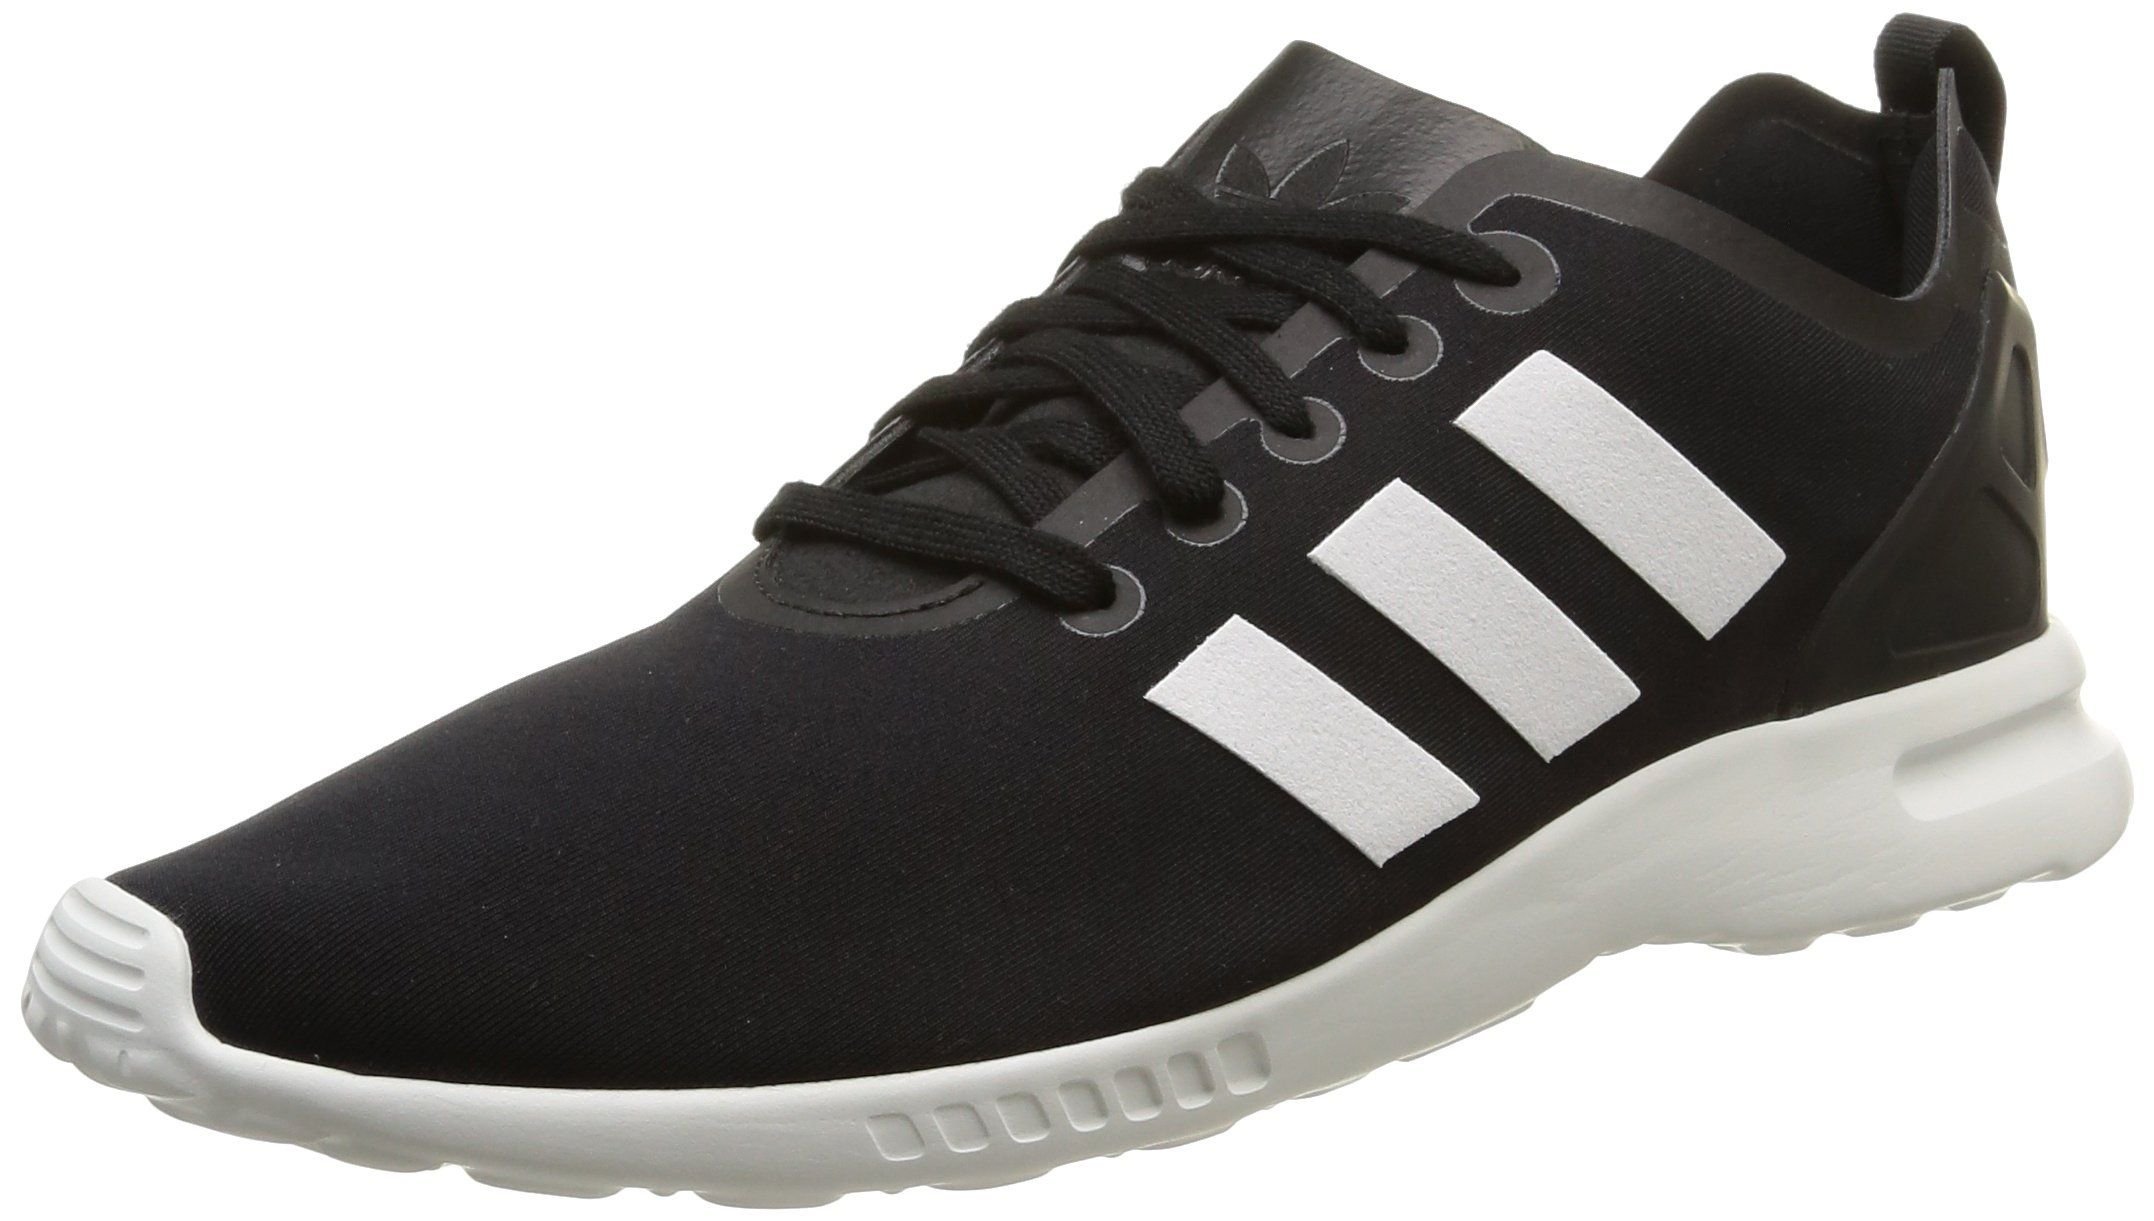 adidas Damen ZX Flux Smooth Sneakers, Rot (Lush Red S16-St/Lush Red S16-St/Core  White), 38 2/3 EU - http://uhr.haus/adidas/38-2-3-eu-adidas-zx-flux…